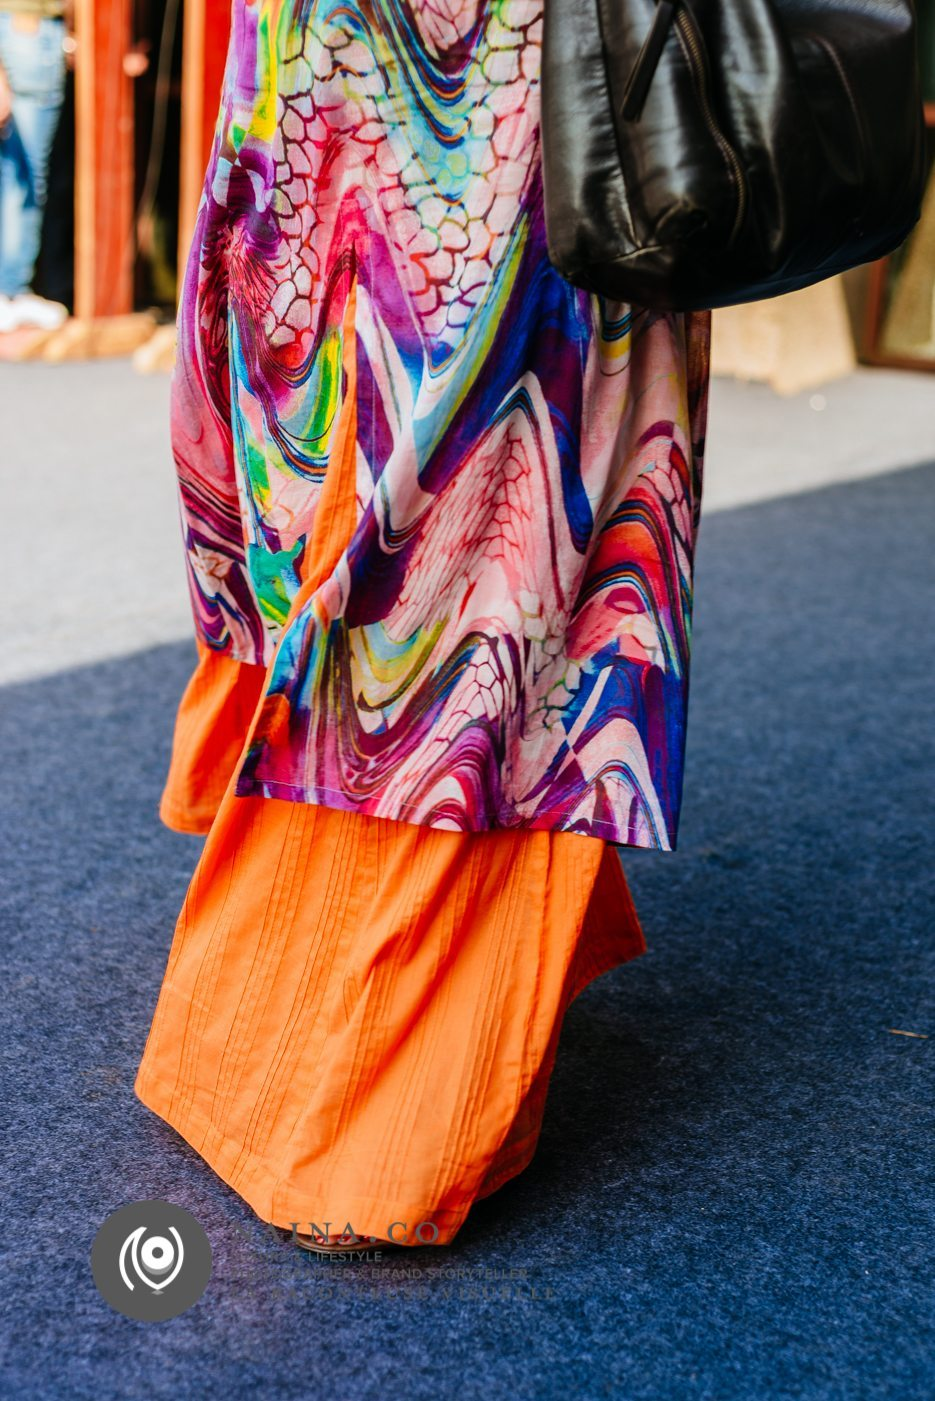 Naina.co-Photographer-Raconteuse-Storyteller-Luxury-Lifestyle-October-2014-Street-Style-WIFWSS15-FDCI-Day01-EyesForFashion-47